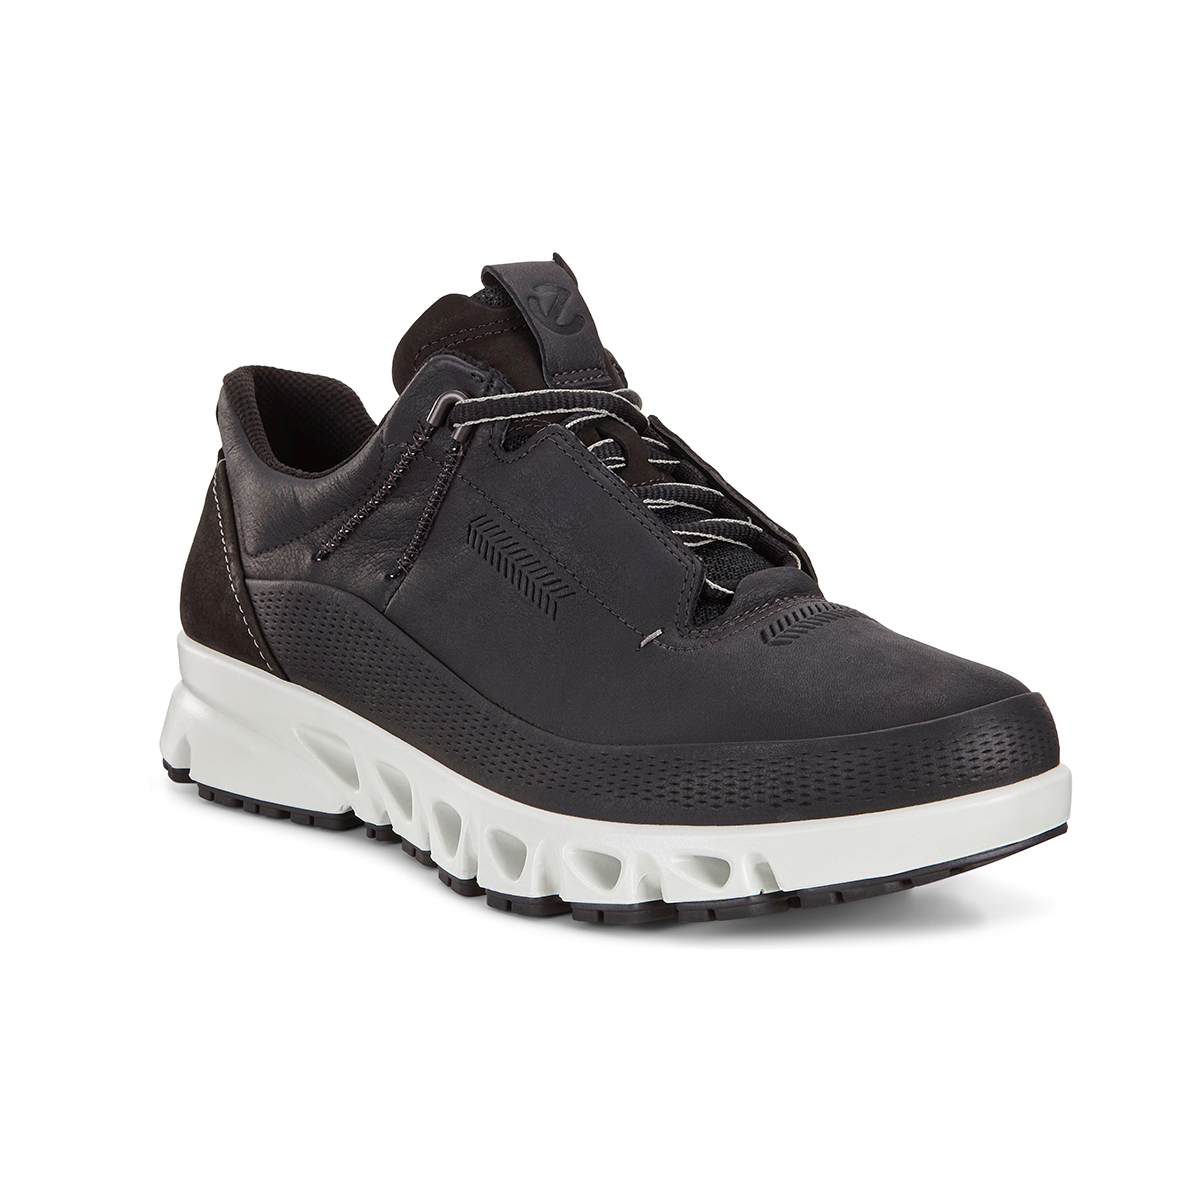 73820bb03c ECCO OMNI-VENT - 121 Shoes